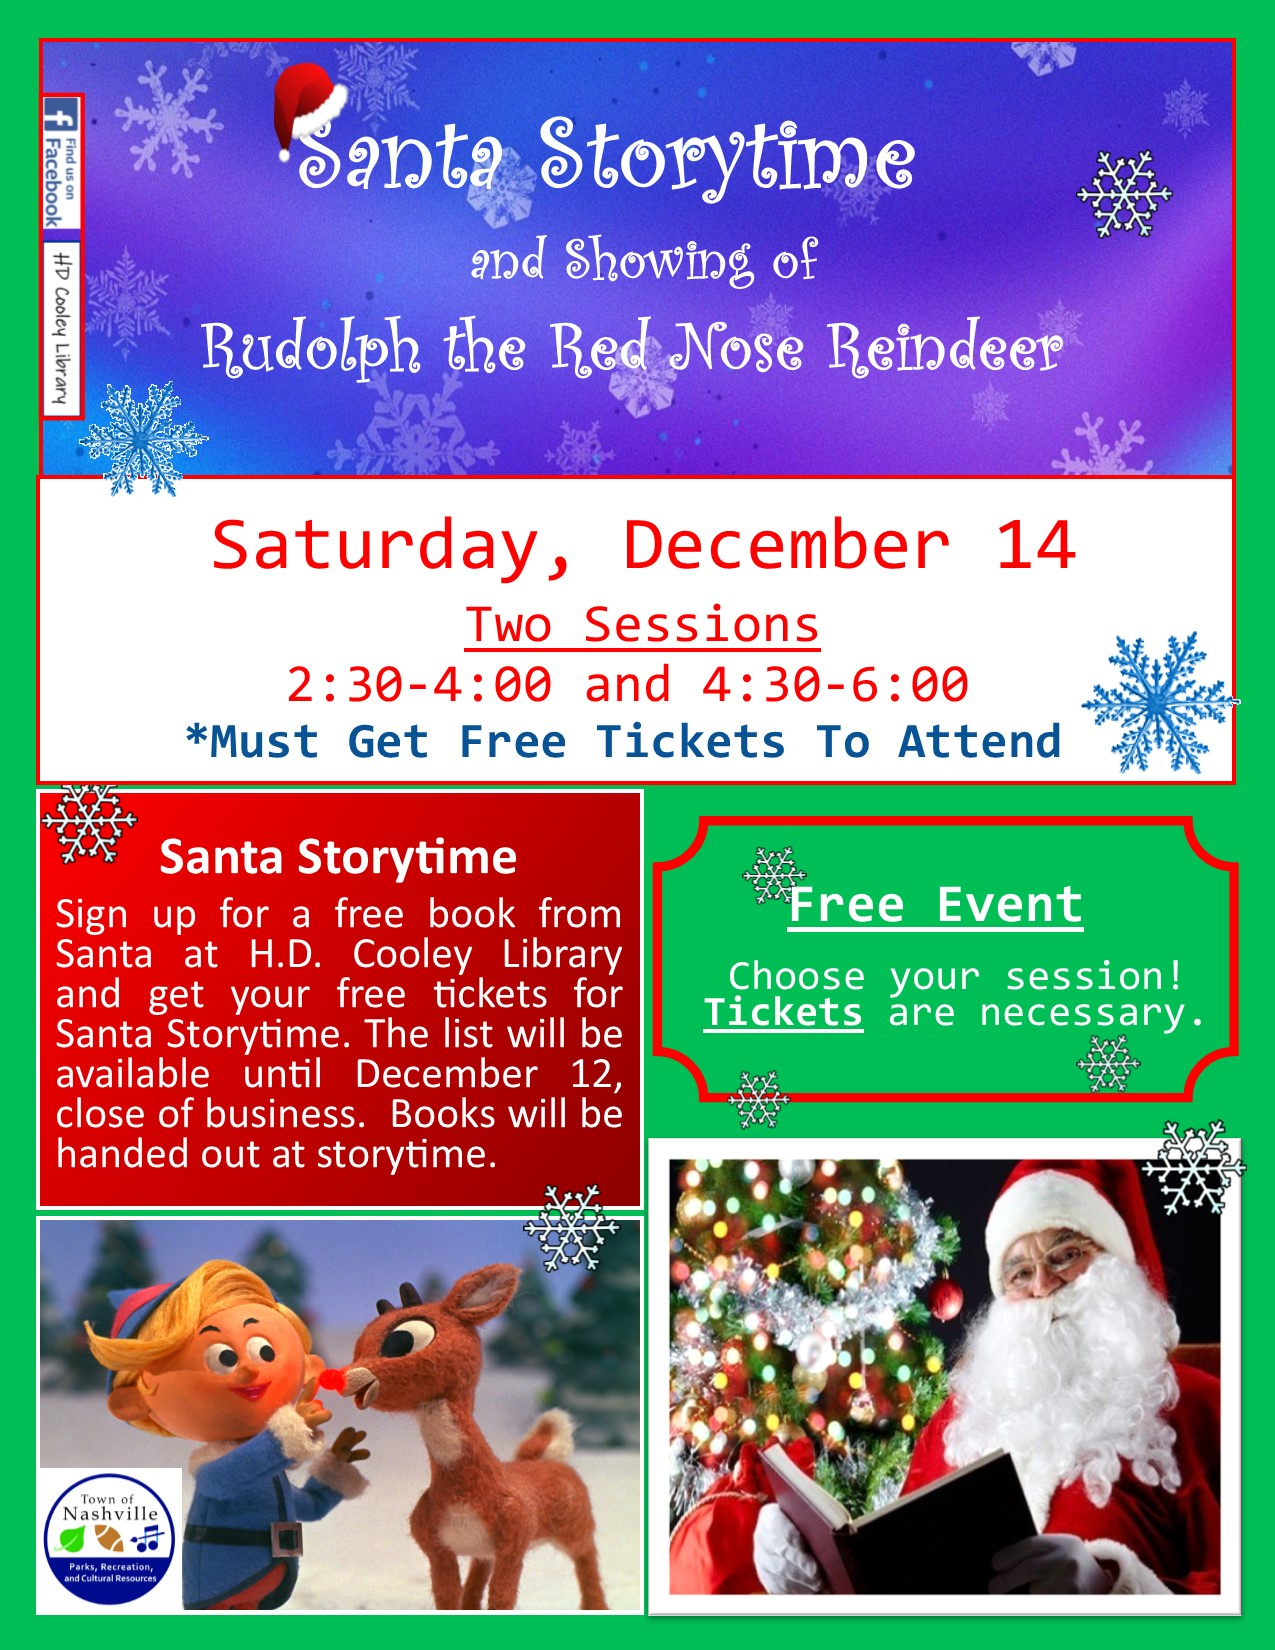 Santa Storytime and Rudolph The Red Nose Reindeer Movie